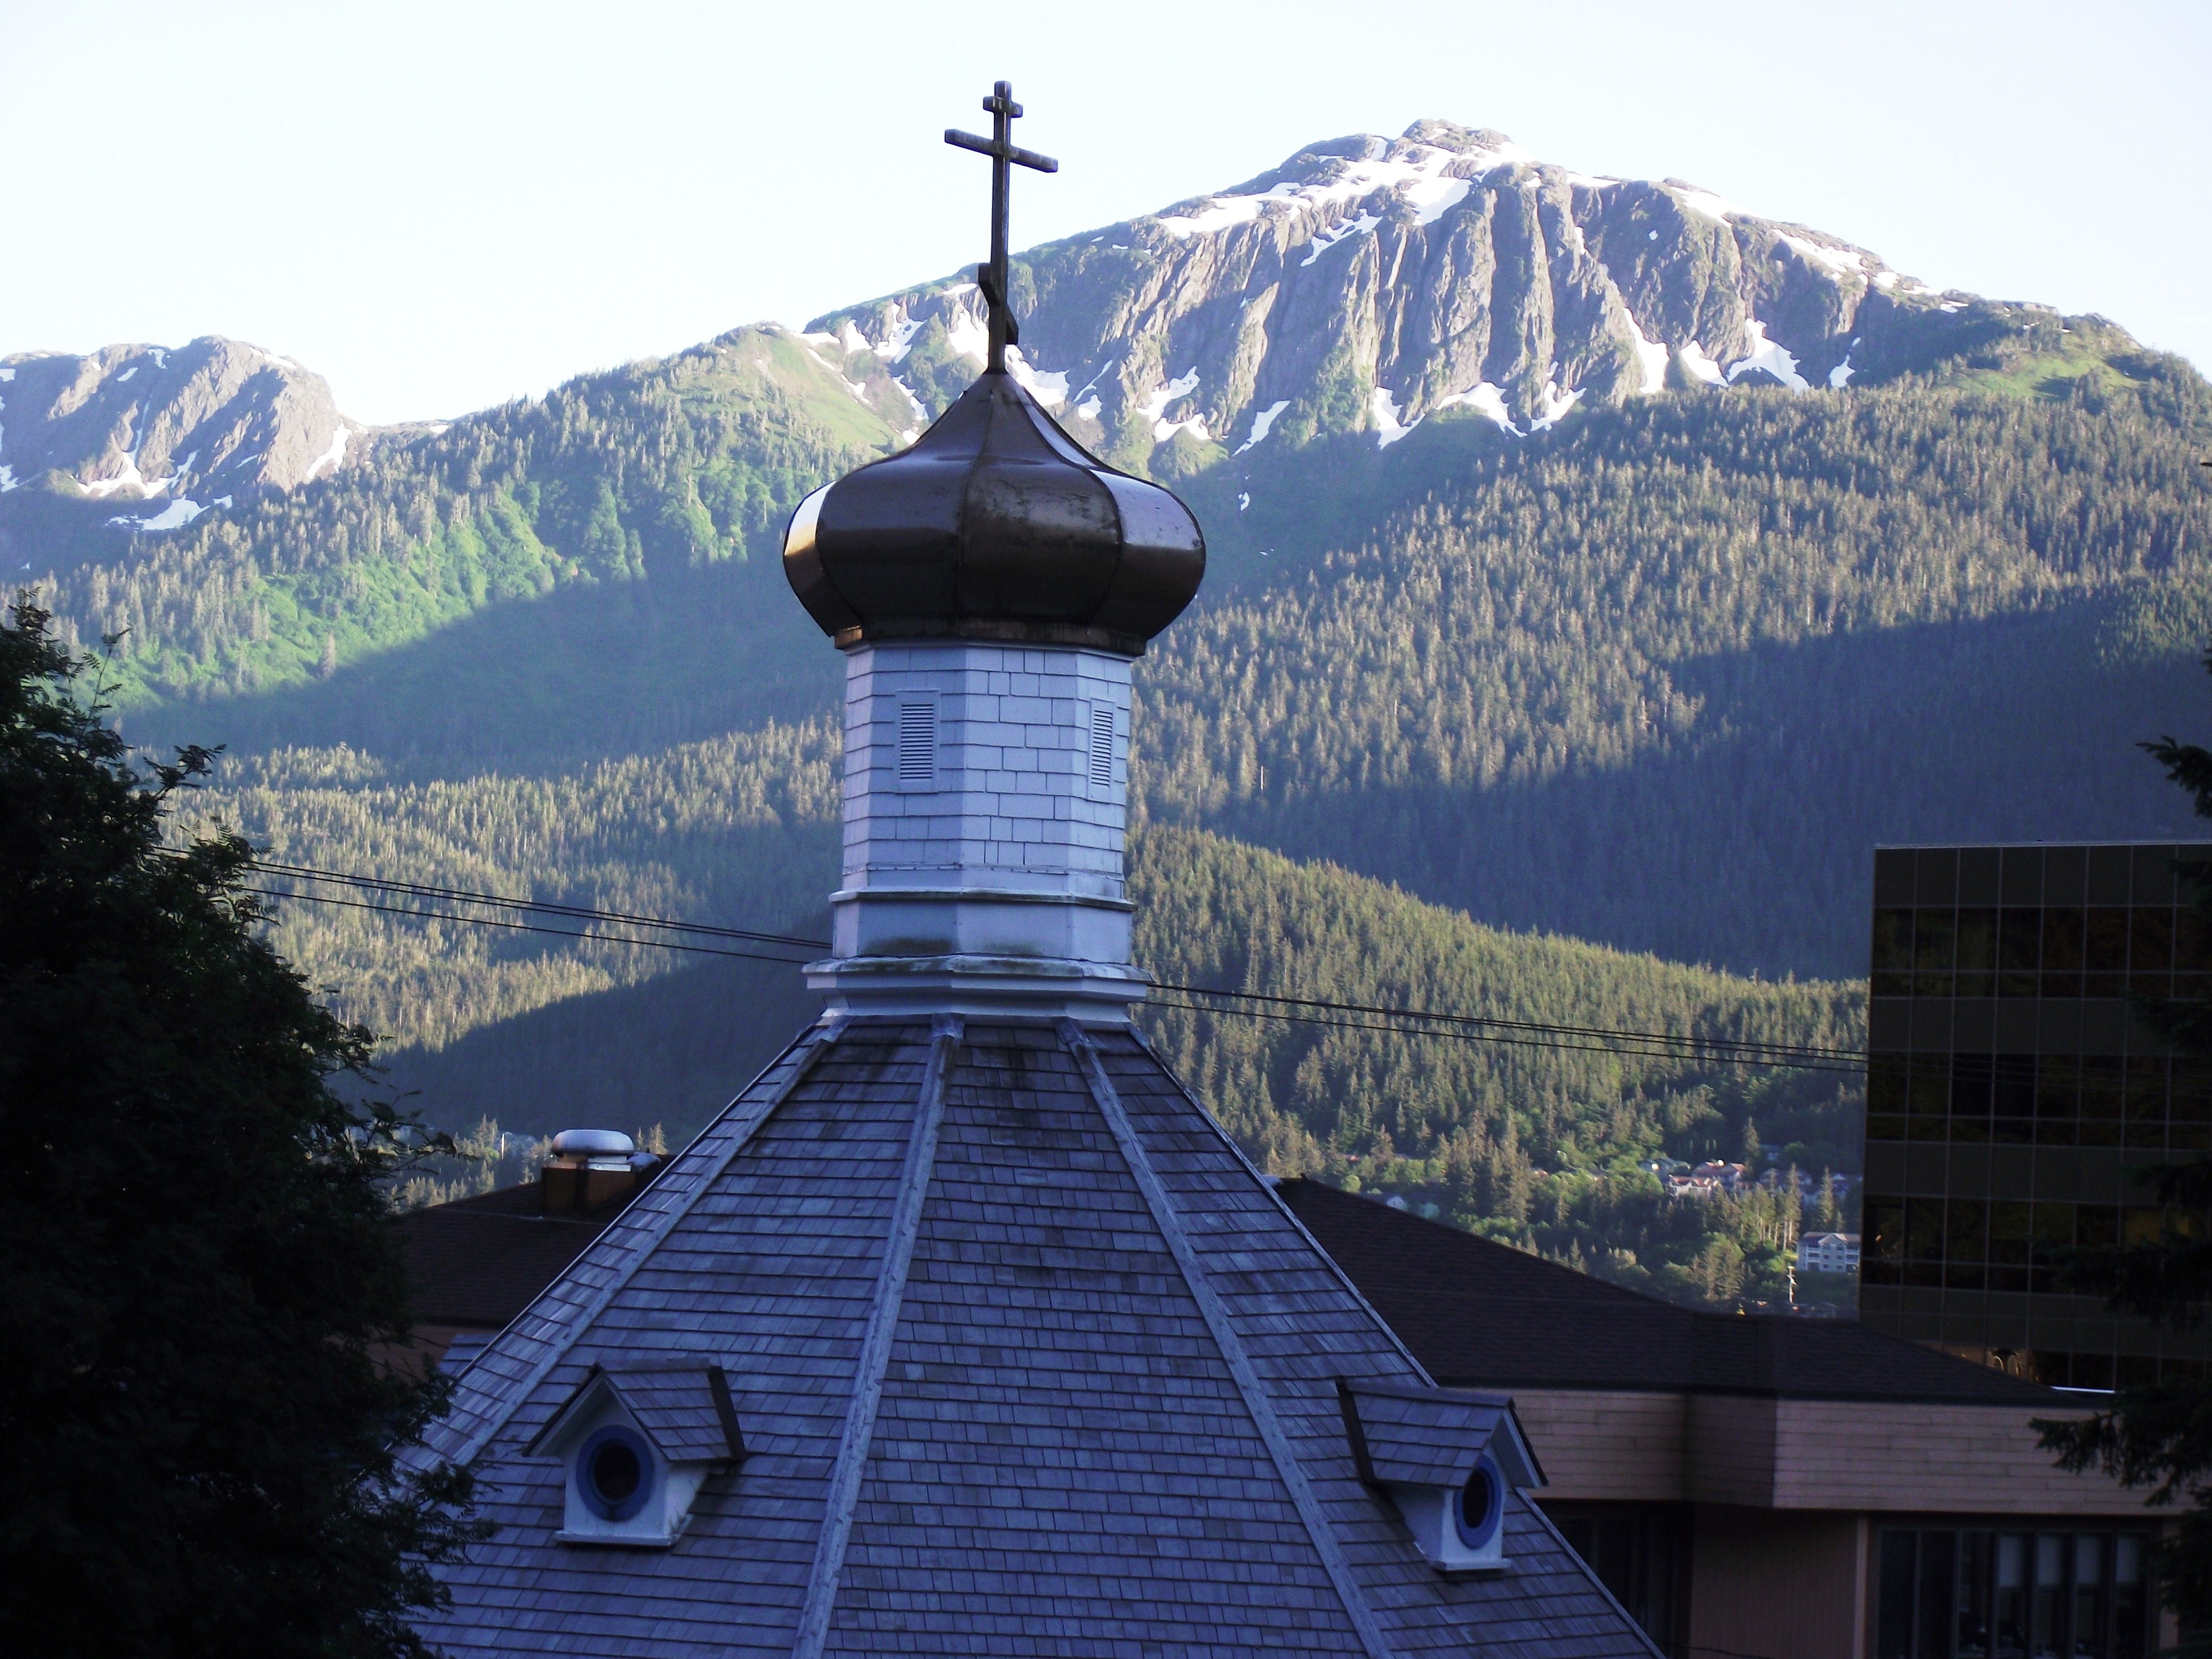 gray concrete church roof at daytime